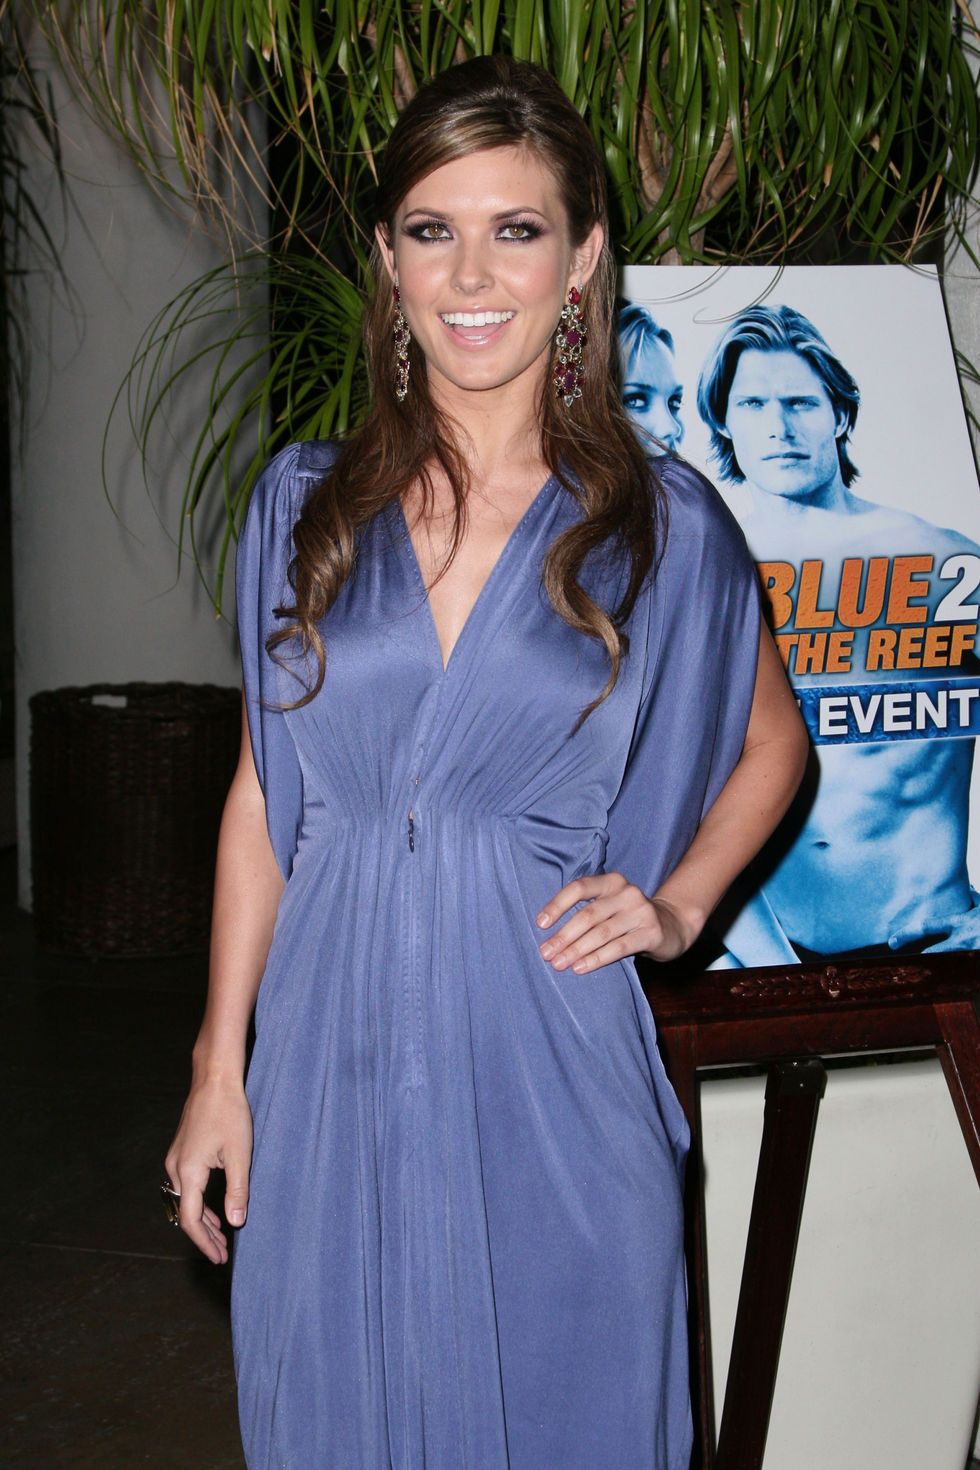 audrina-patridge-into-the-blue-2-the-reef-premiere-in-beverly-hills-10